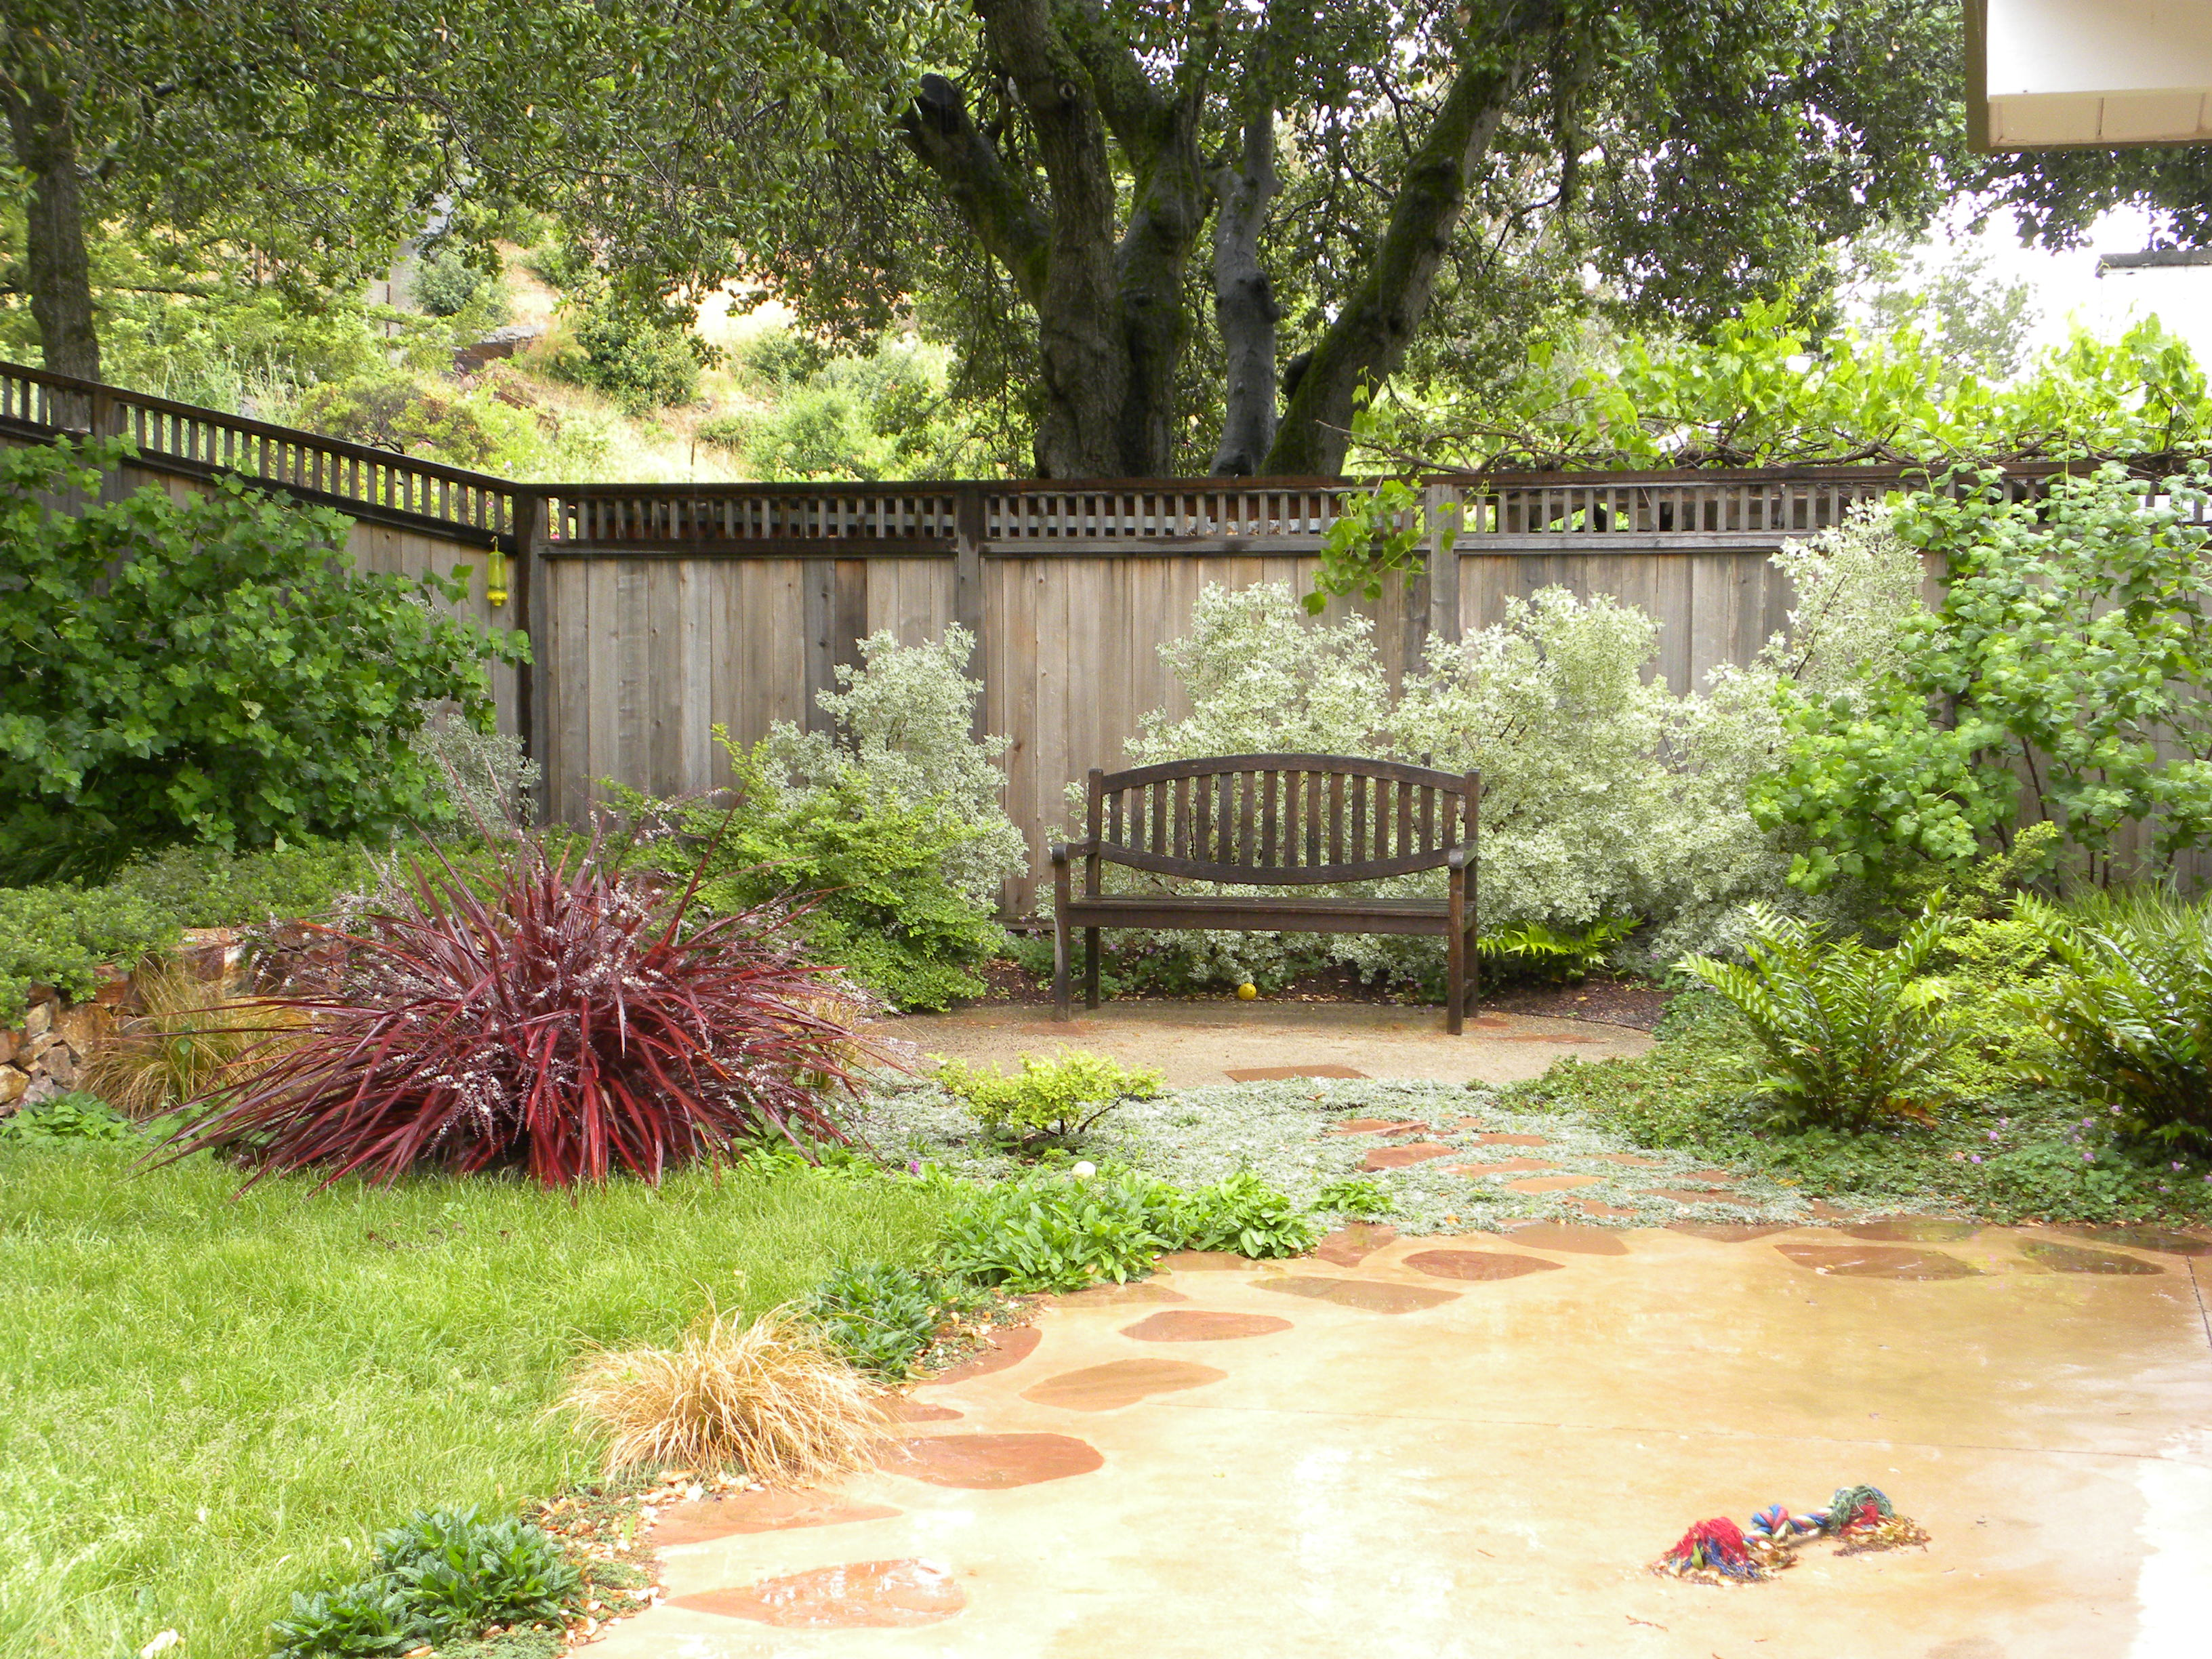 Decomposed Granite Paths and Patios | The Human Footprint on Decomposed Granite Backyard Ideas id=97414